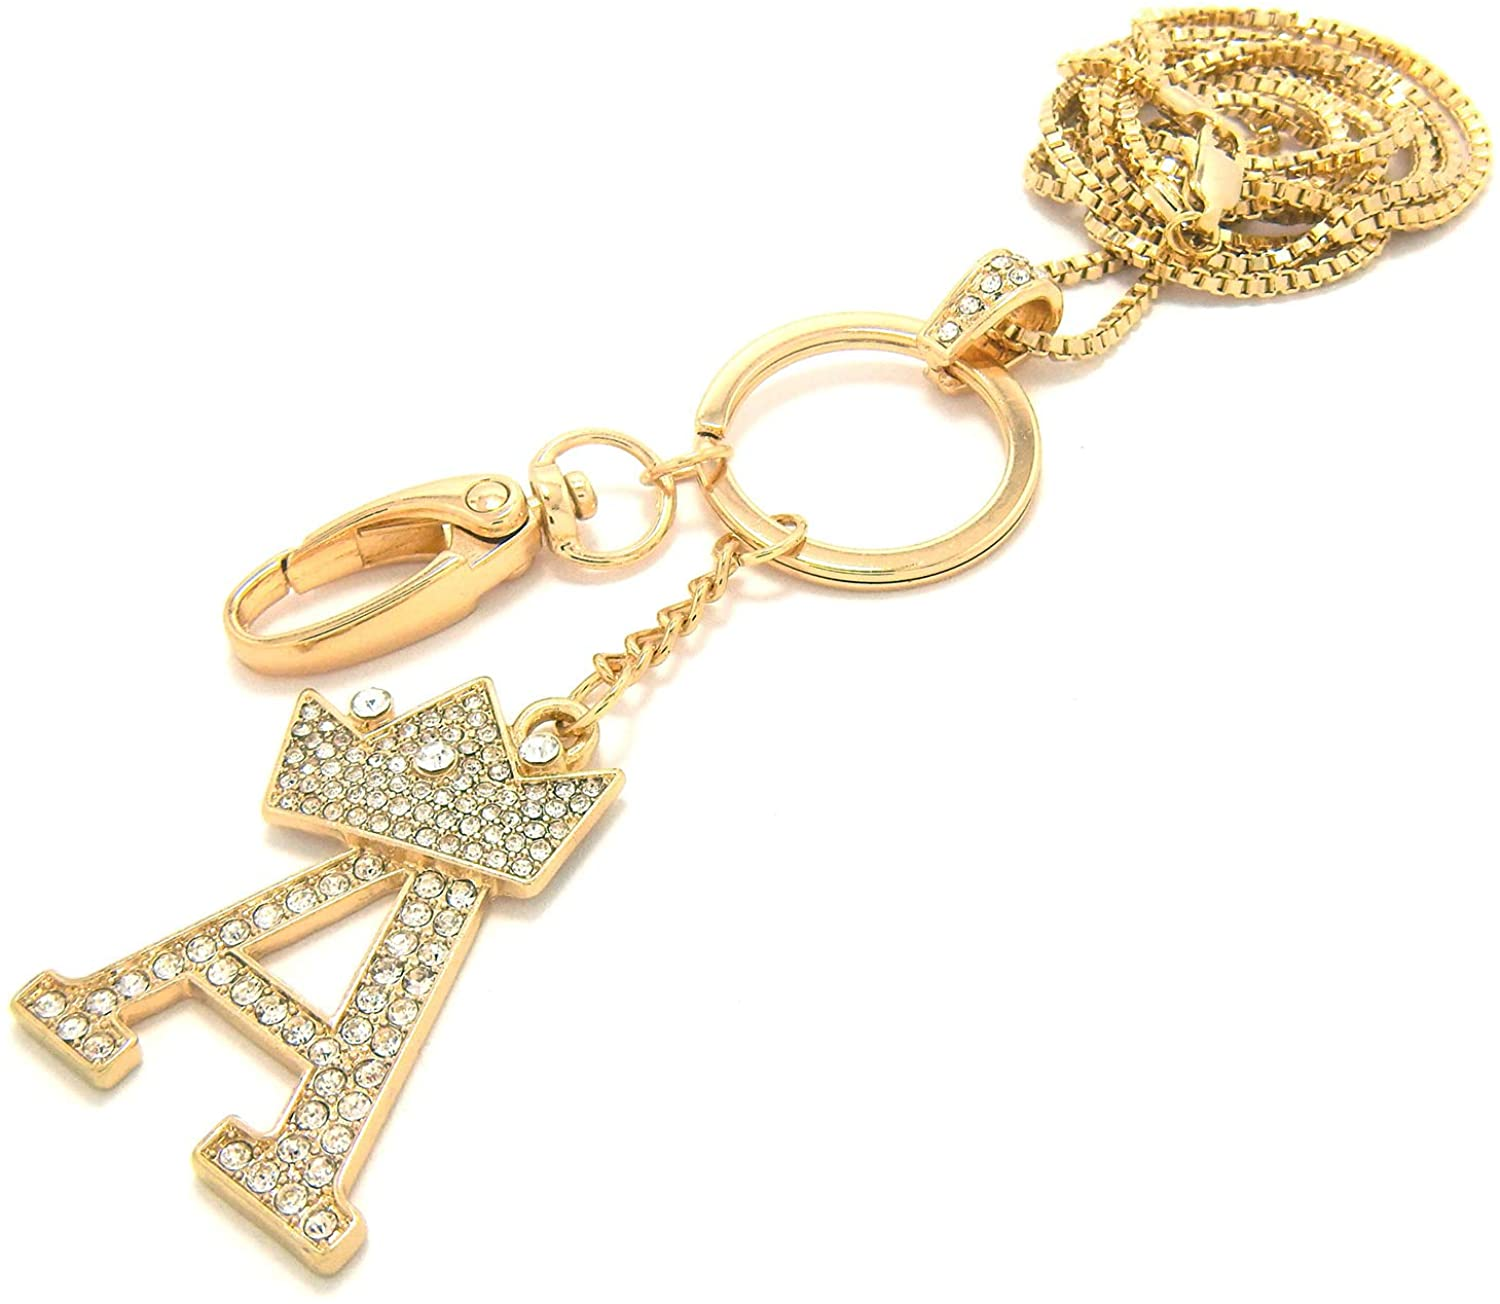 Sometheme Special Unisex A to Z Initial Letter Pendant Lanyard Necklace with Keyring/ID Holder Hook